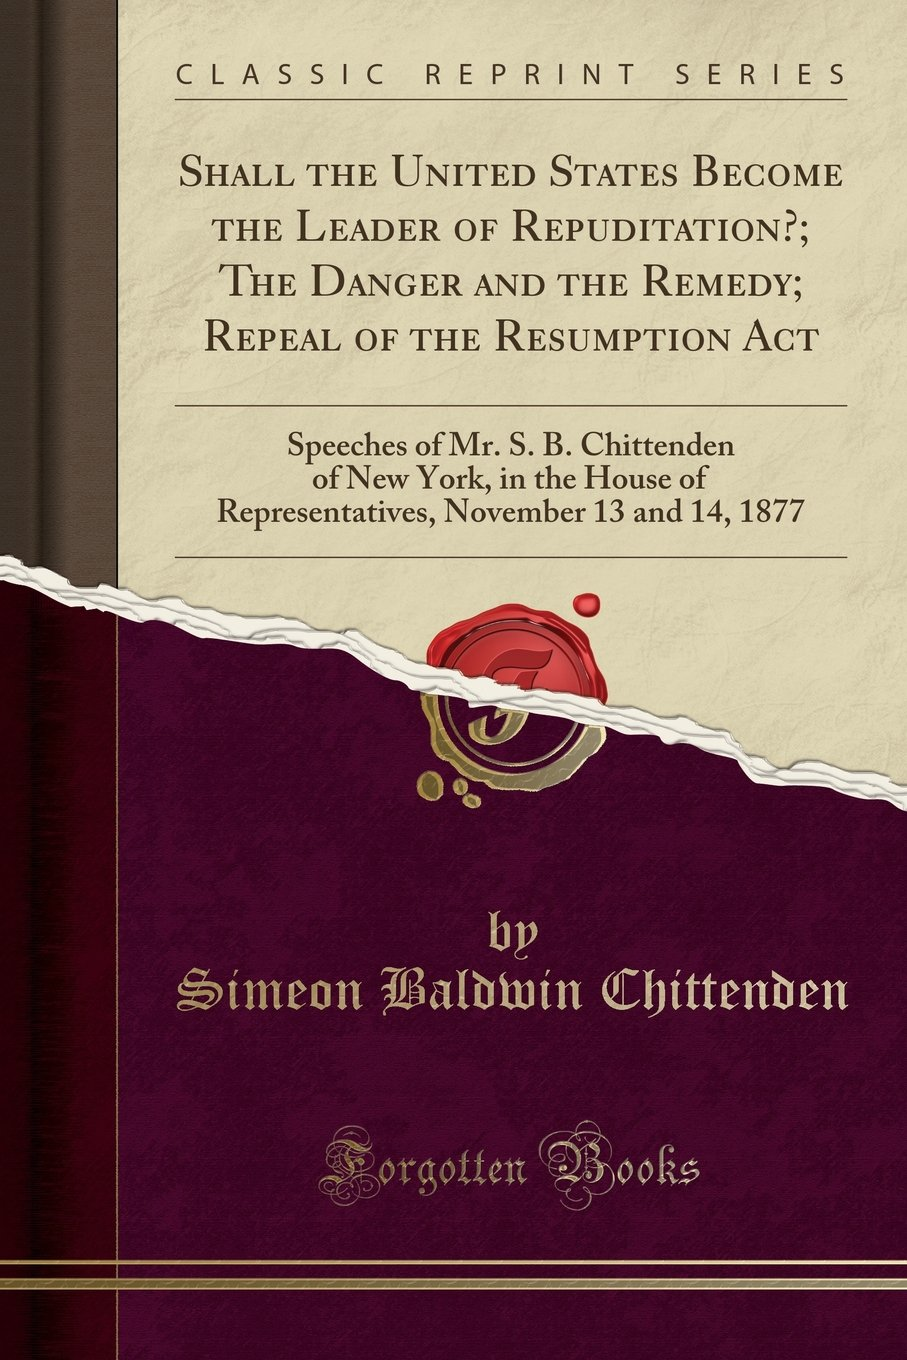 Download Shall the United States Become the Leader of Repuditation?; The Danger and the Remedy; Repeal of the Resumption Act: Speeches of Mr. S. B. Chittenden ... November 13 and 14, 1877 (Classic Reprint) pdf